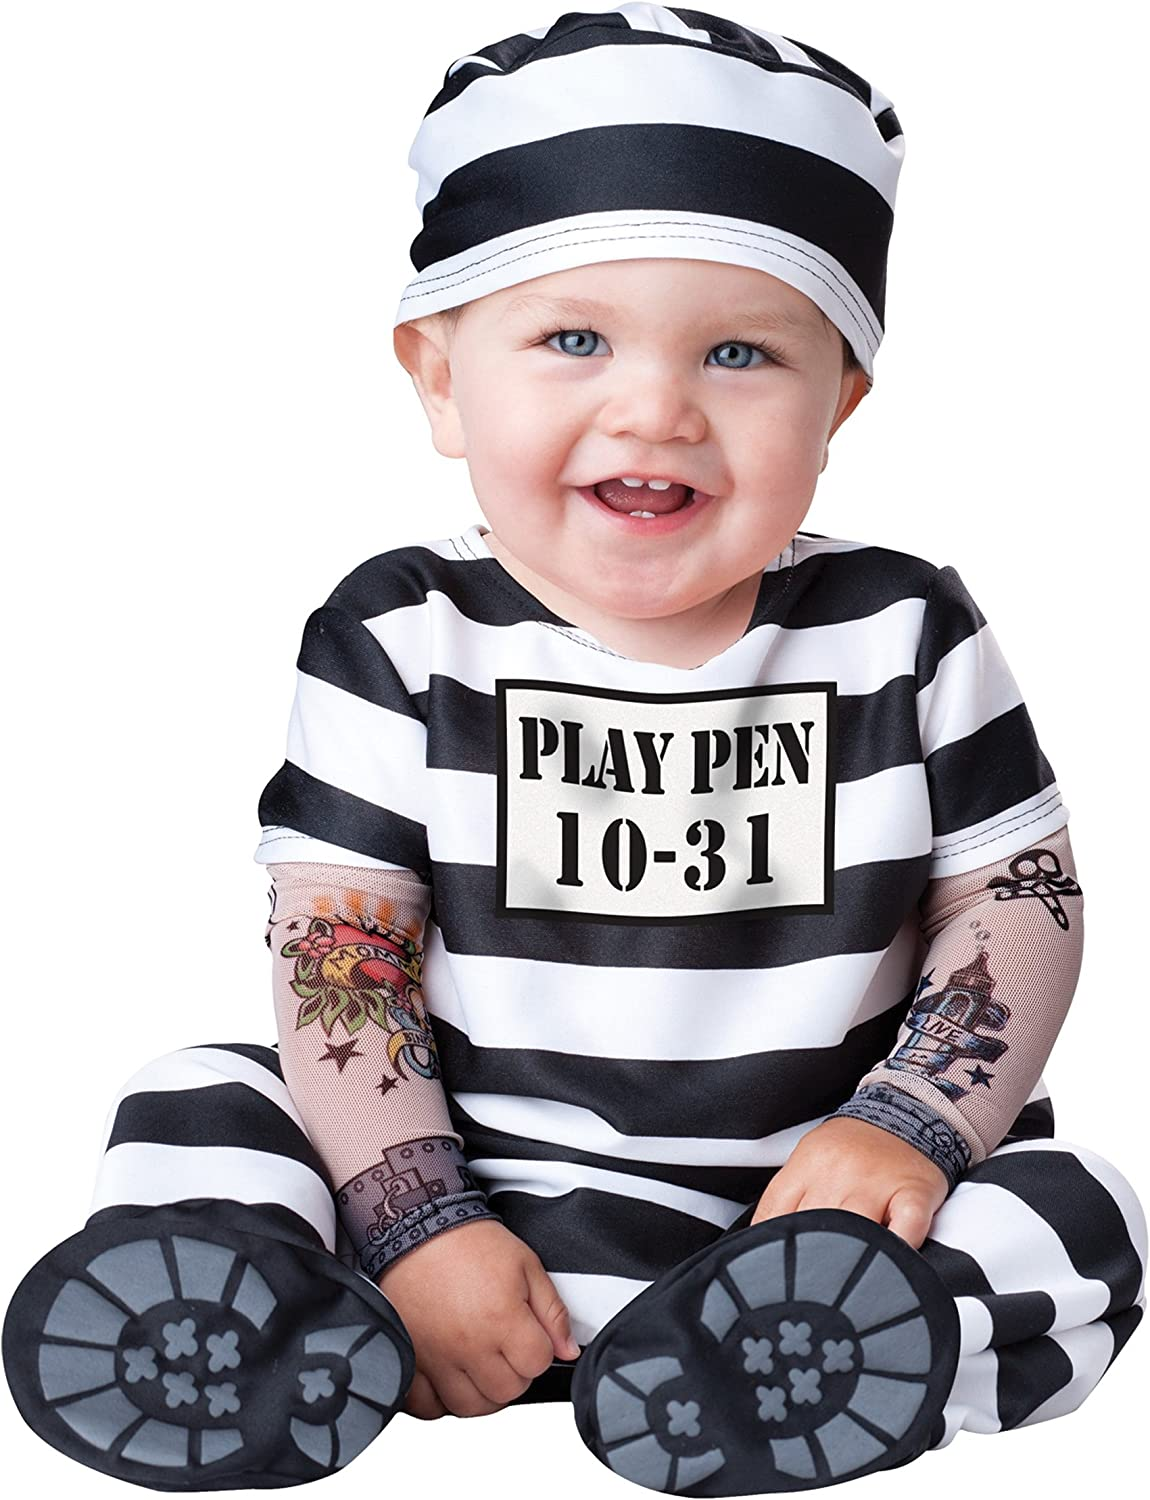 InCharacter Costumes Babys Time Out Convict Costume